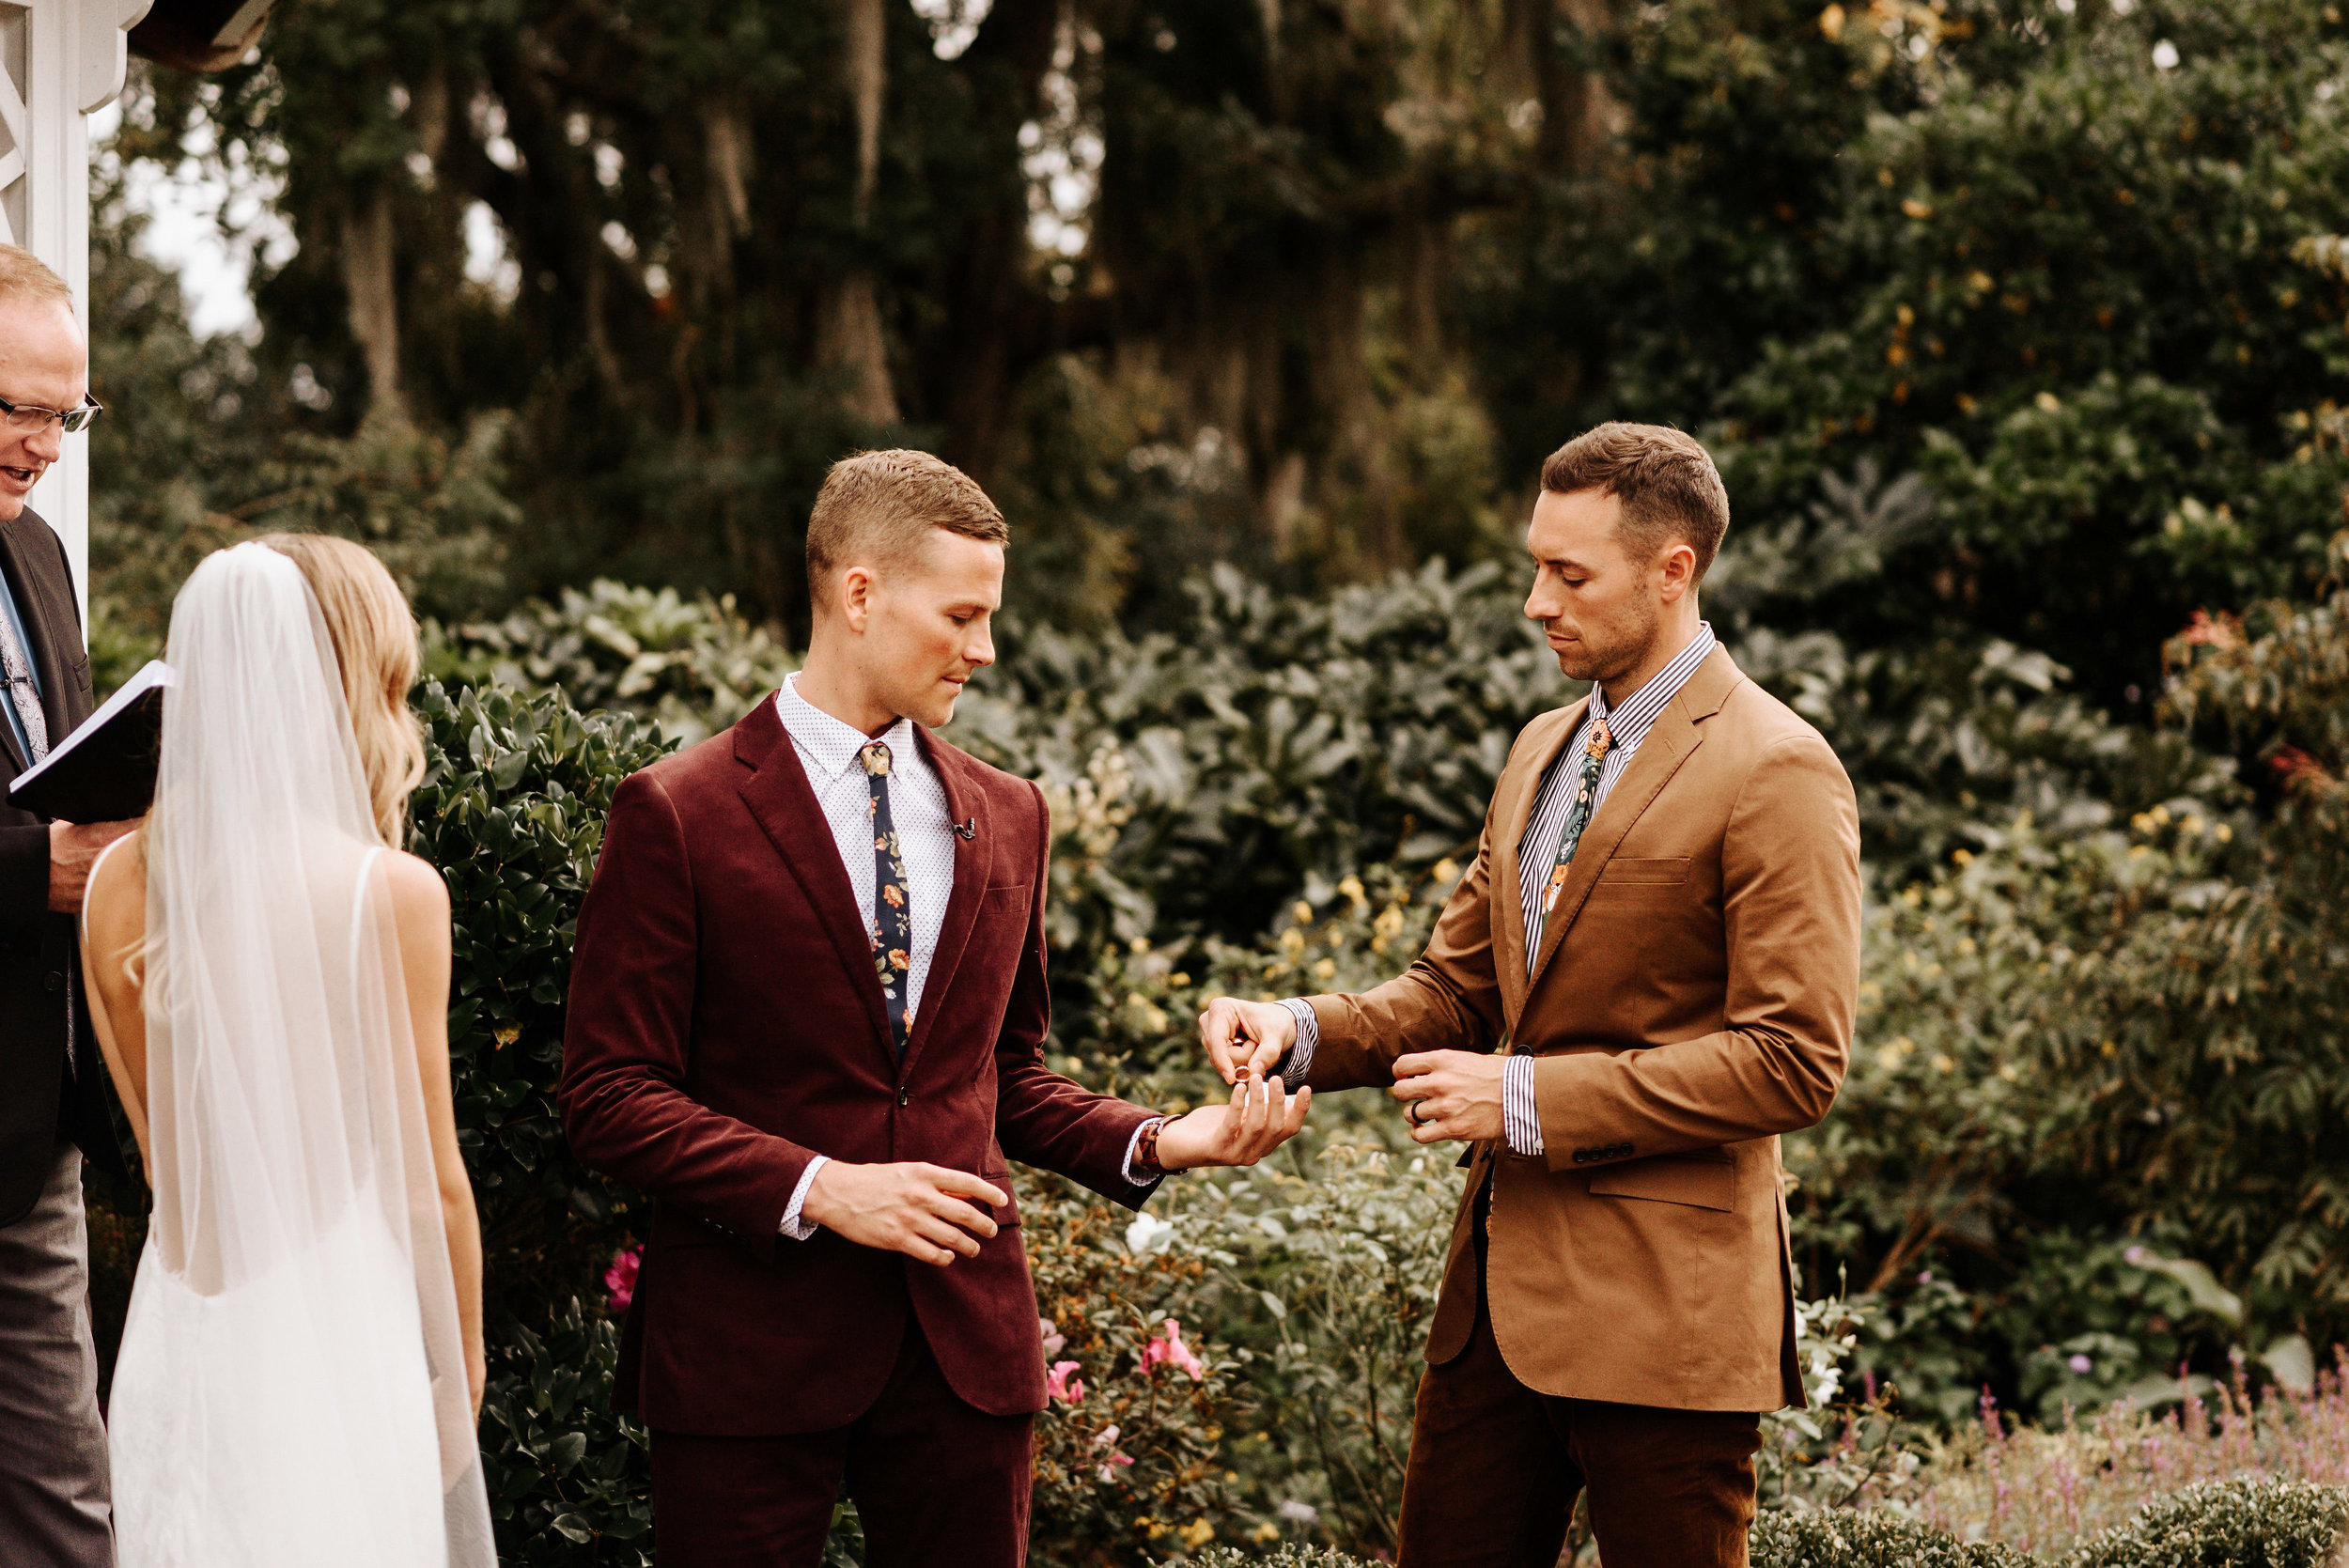 Kourtney_Sean_Savannah_Georgia_Wedding_Wormsloe_Histroic_Site_Coastal_Georgia_Botanical_Gardens_Photography_by_V_7007.jpg